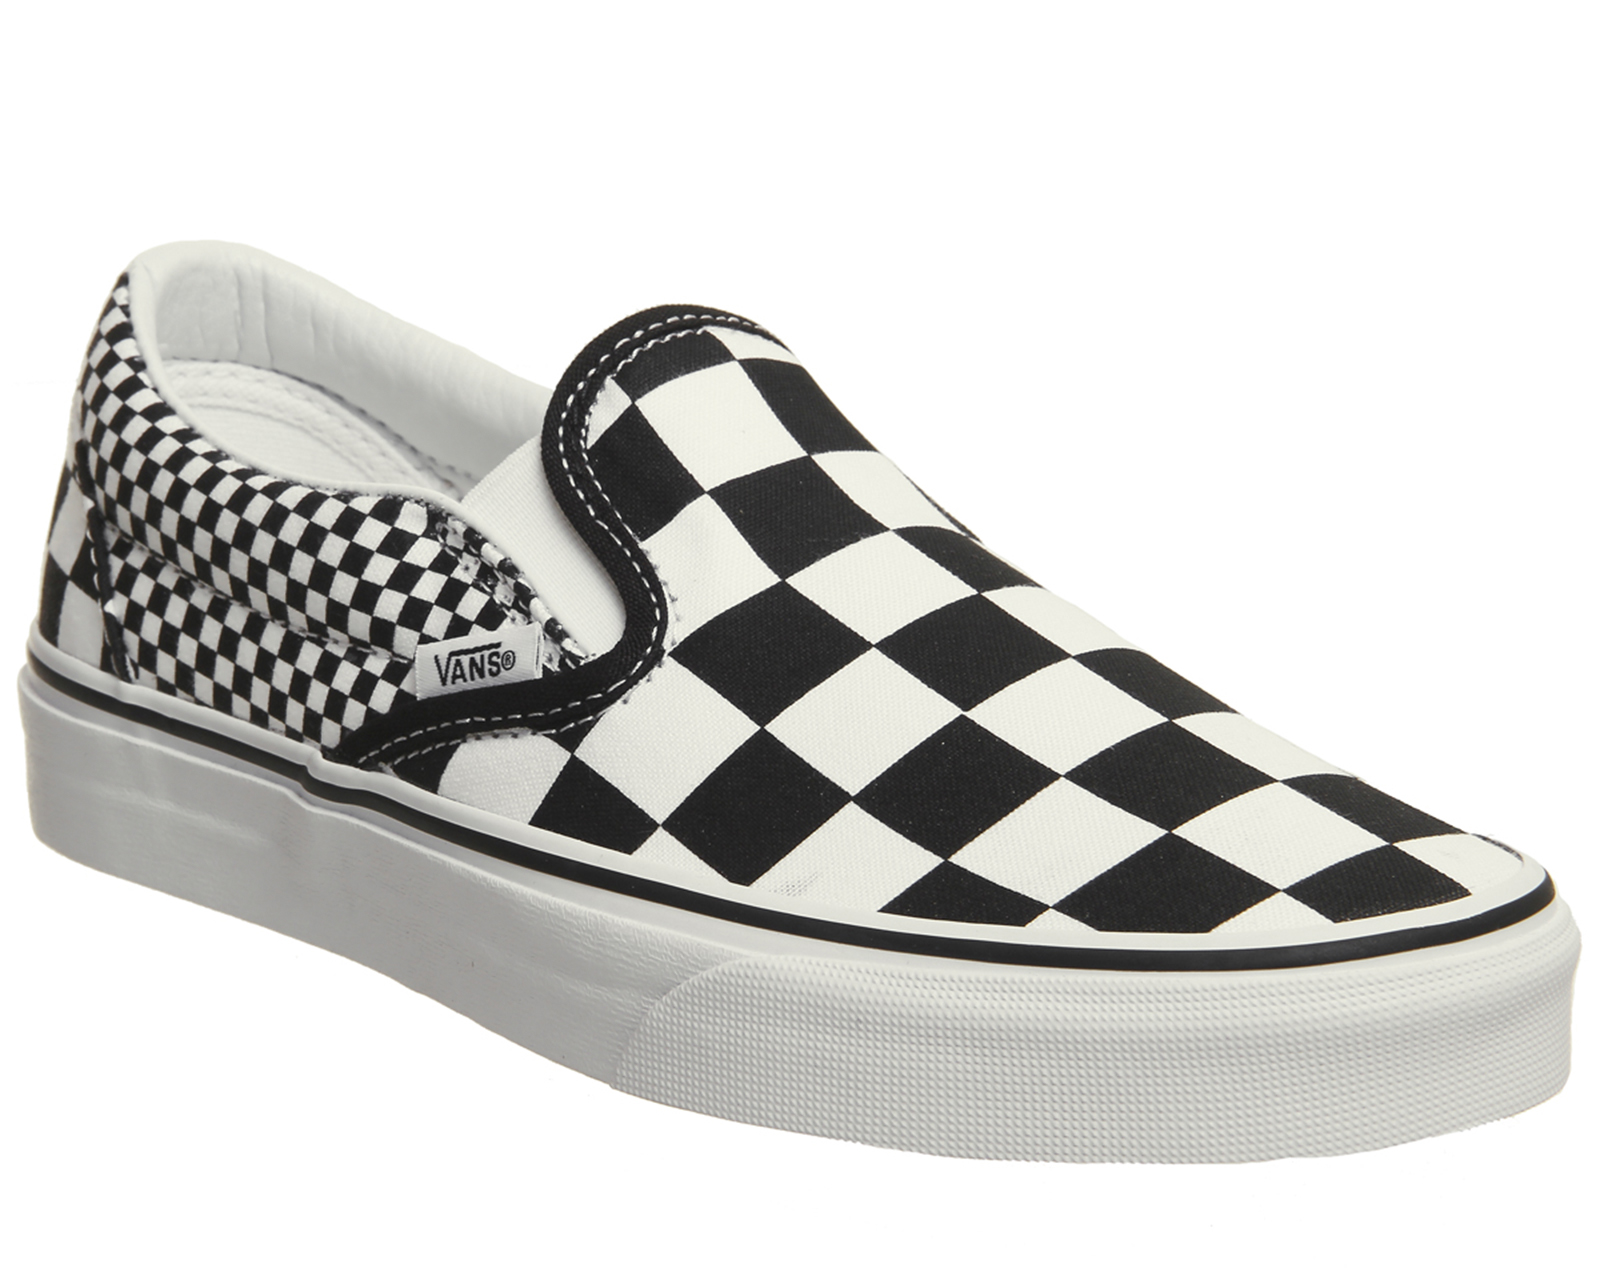 dbd5824d2f7 Sentinel Vans Vans Classic Slip On Trainers Black White Mix Check Trainers  Shoes